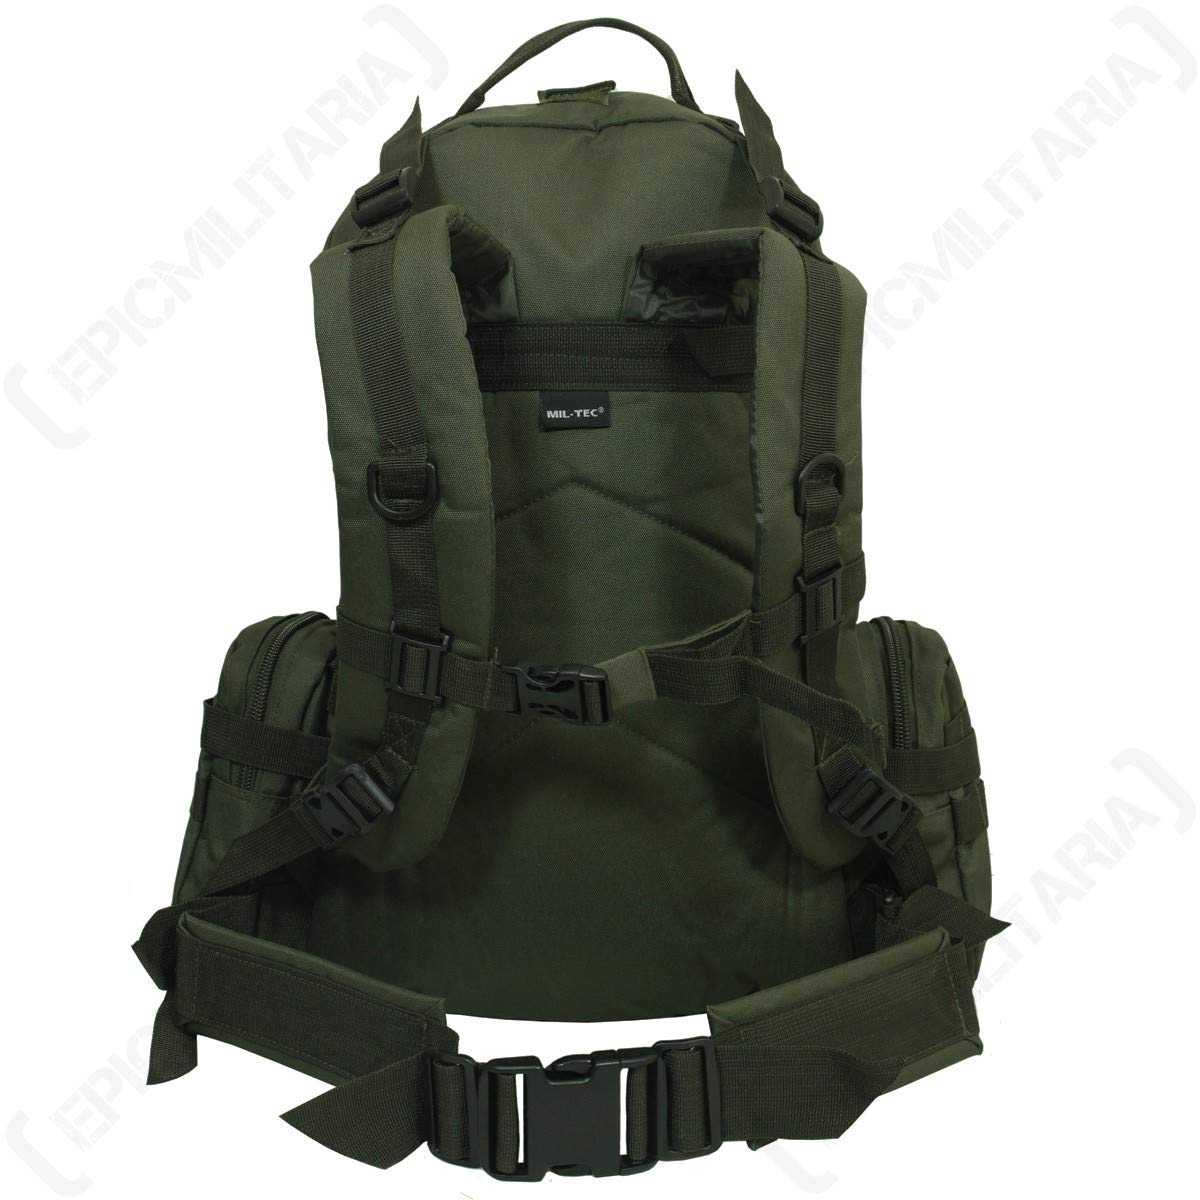 Mil-Tec Olive Green MOLLE Defense Pack